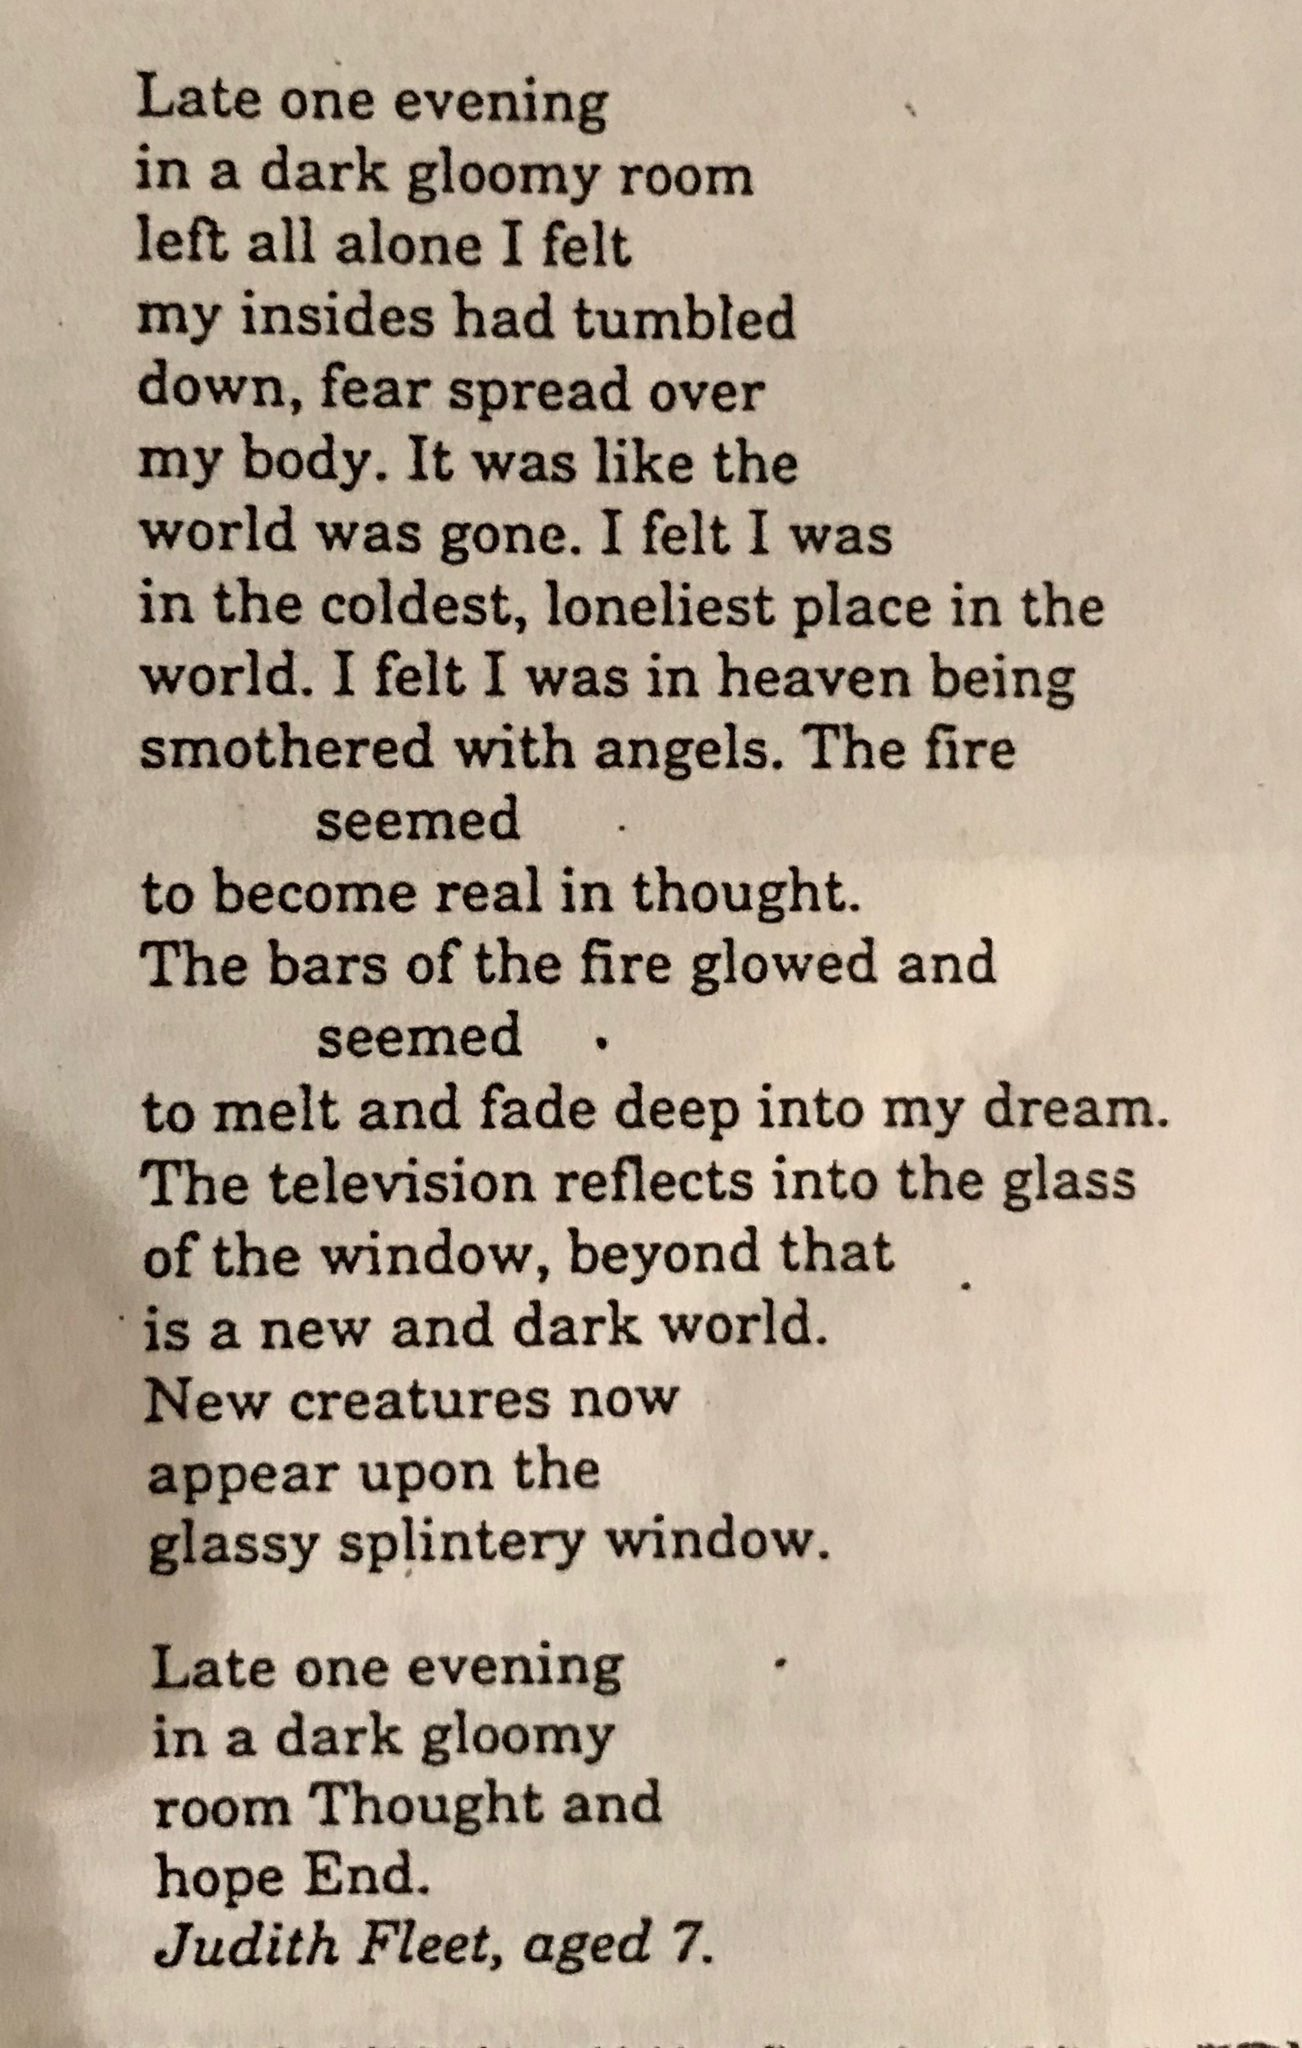 One of the greatest poems a child ever wrote in my class - about 42 years ago in a lesson on silence and loneliness https://t.co/j7QcD8J9Ul